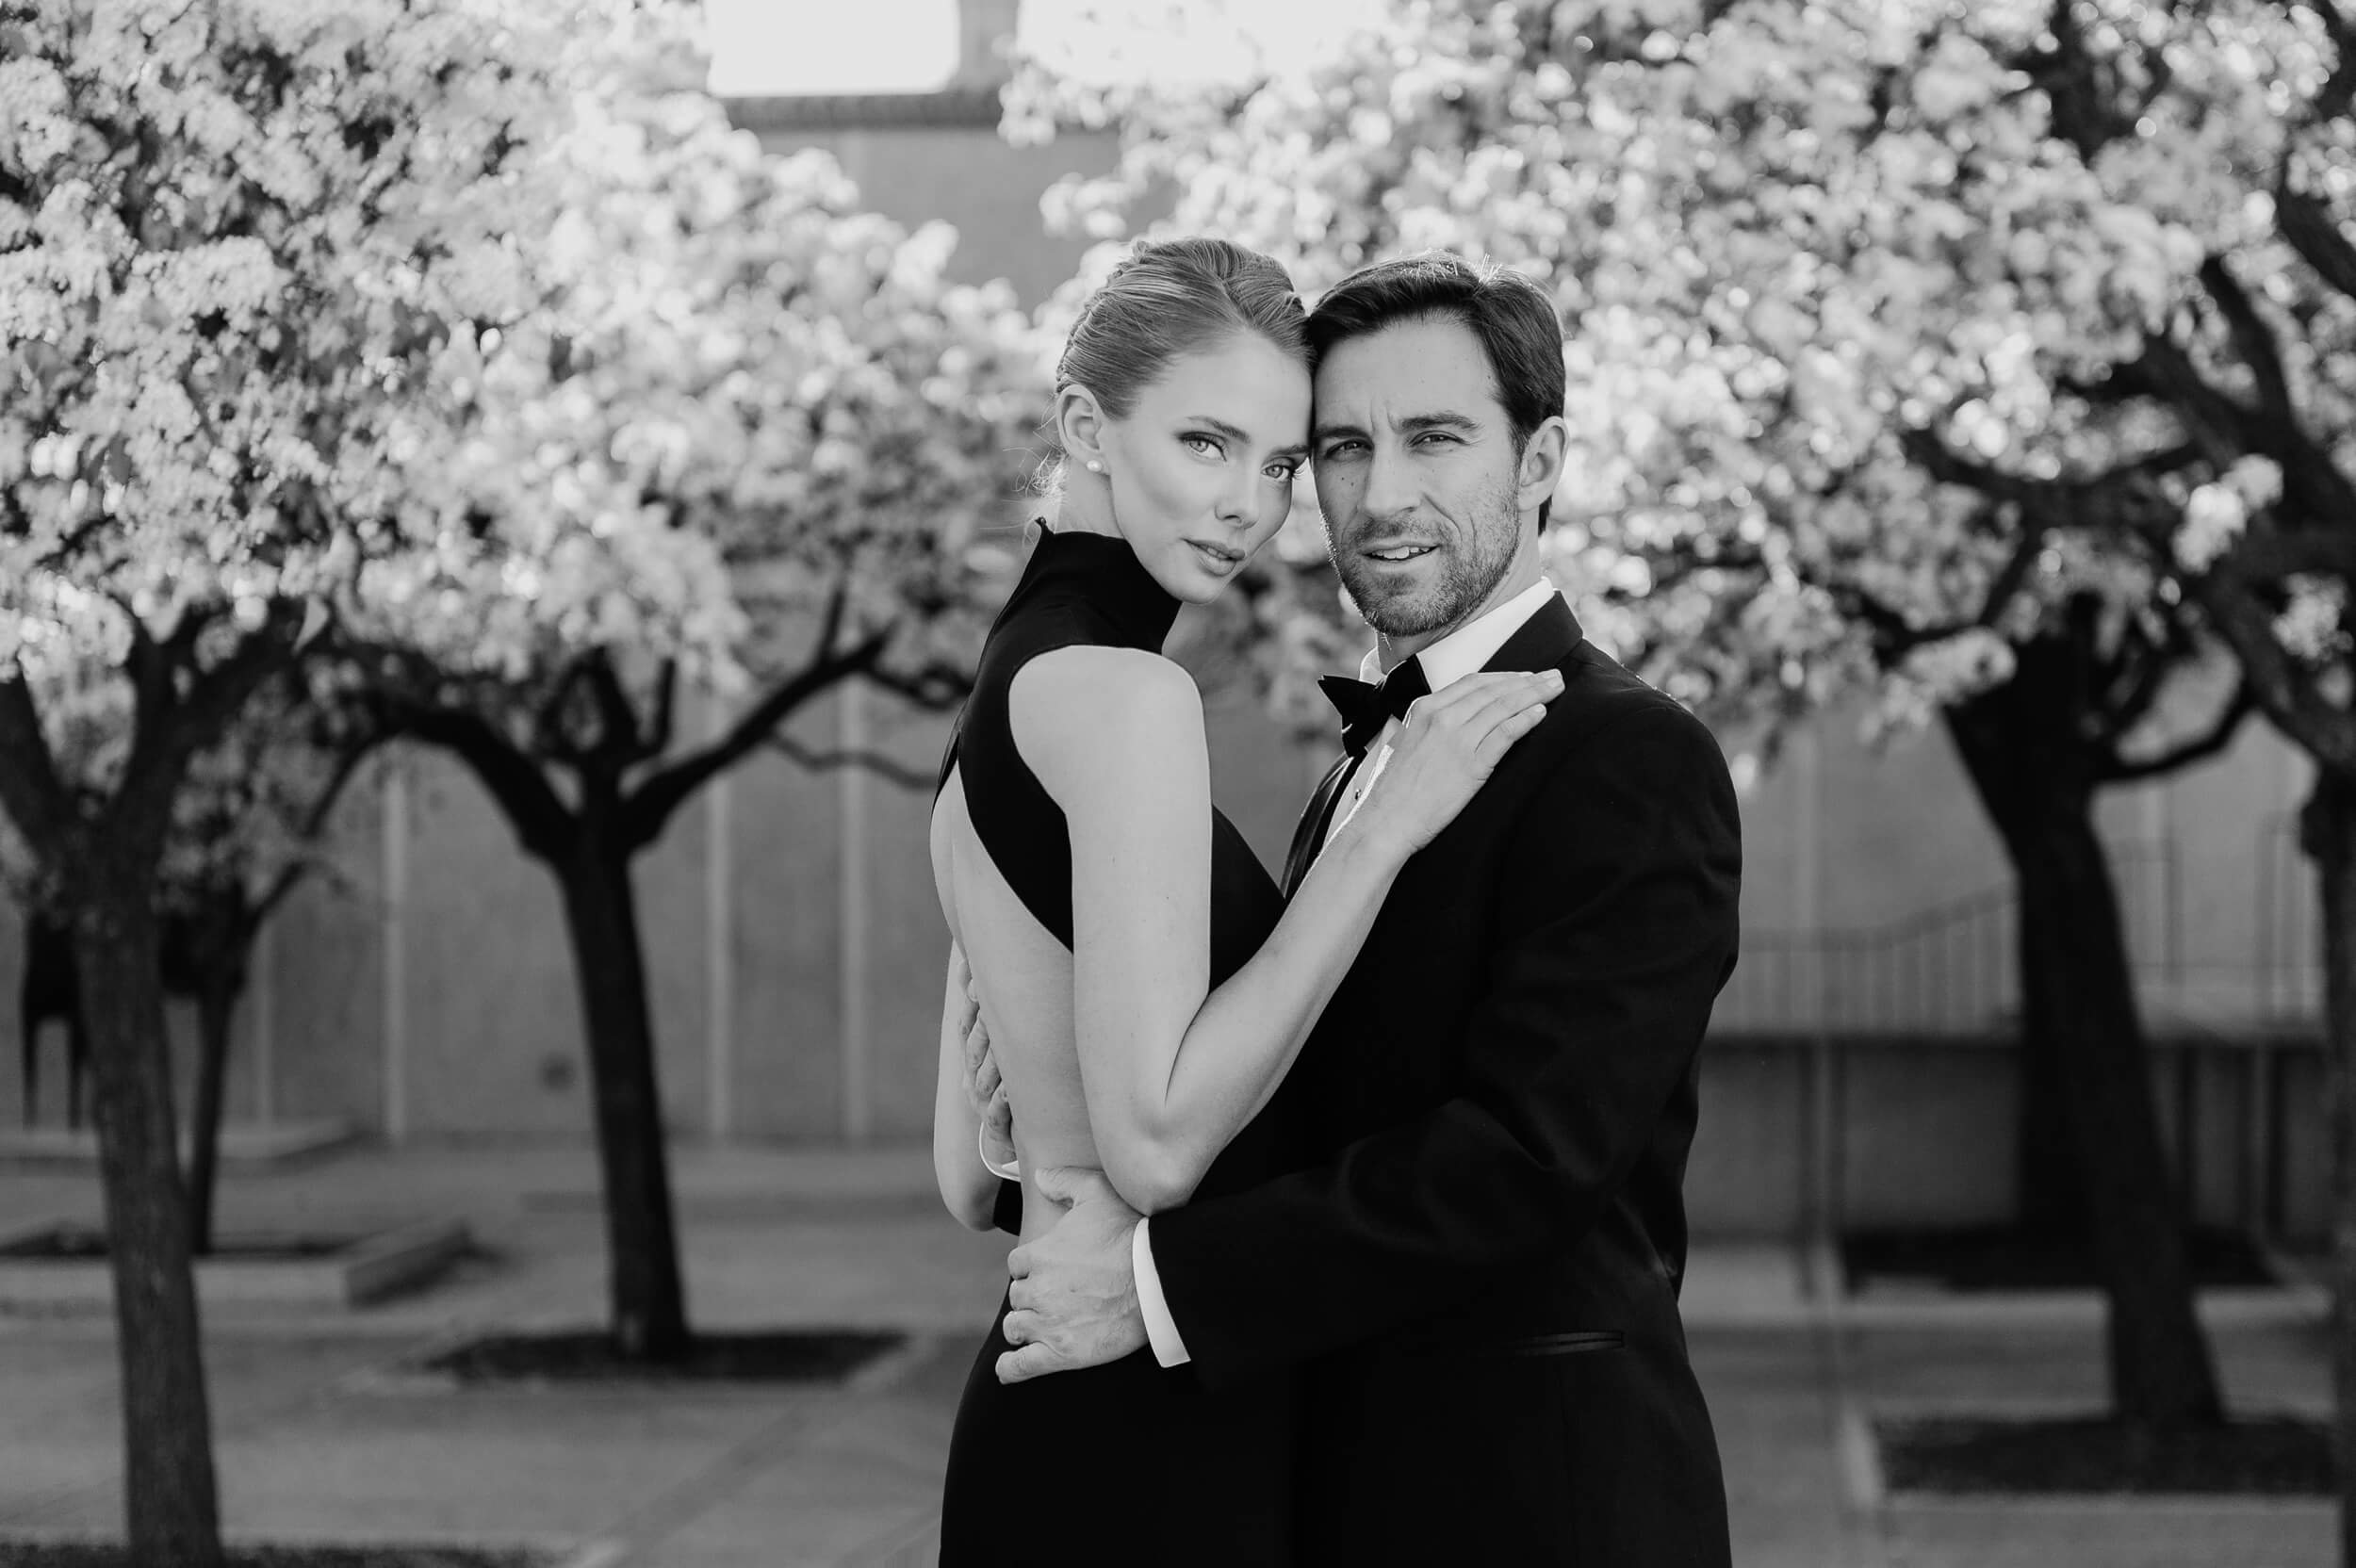 couple in formalwear pose in front of flowering trees near museum of art in balboa park